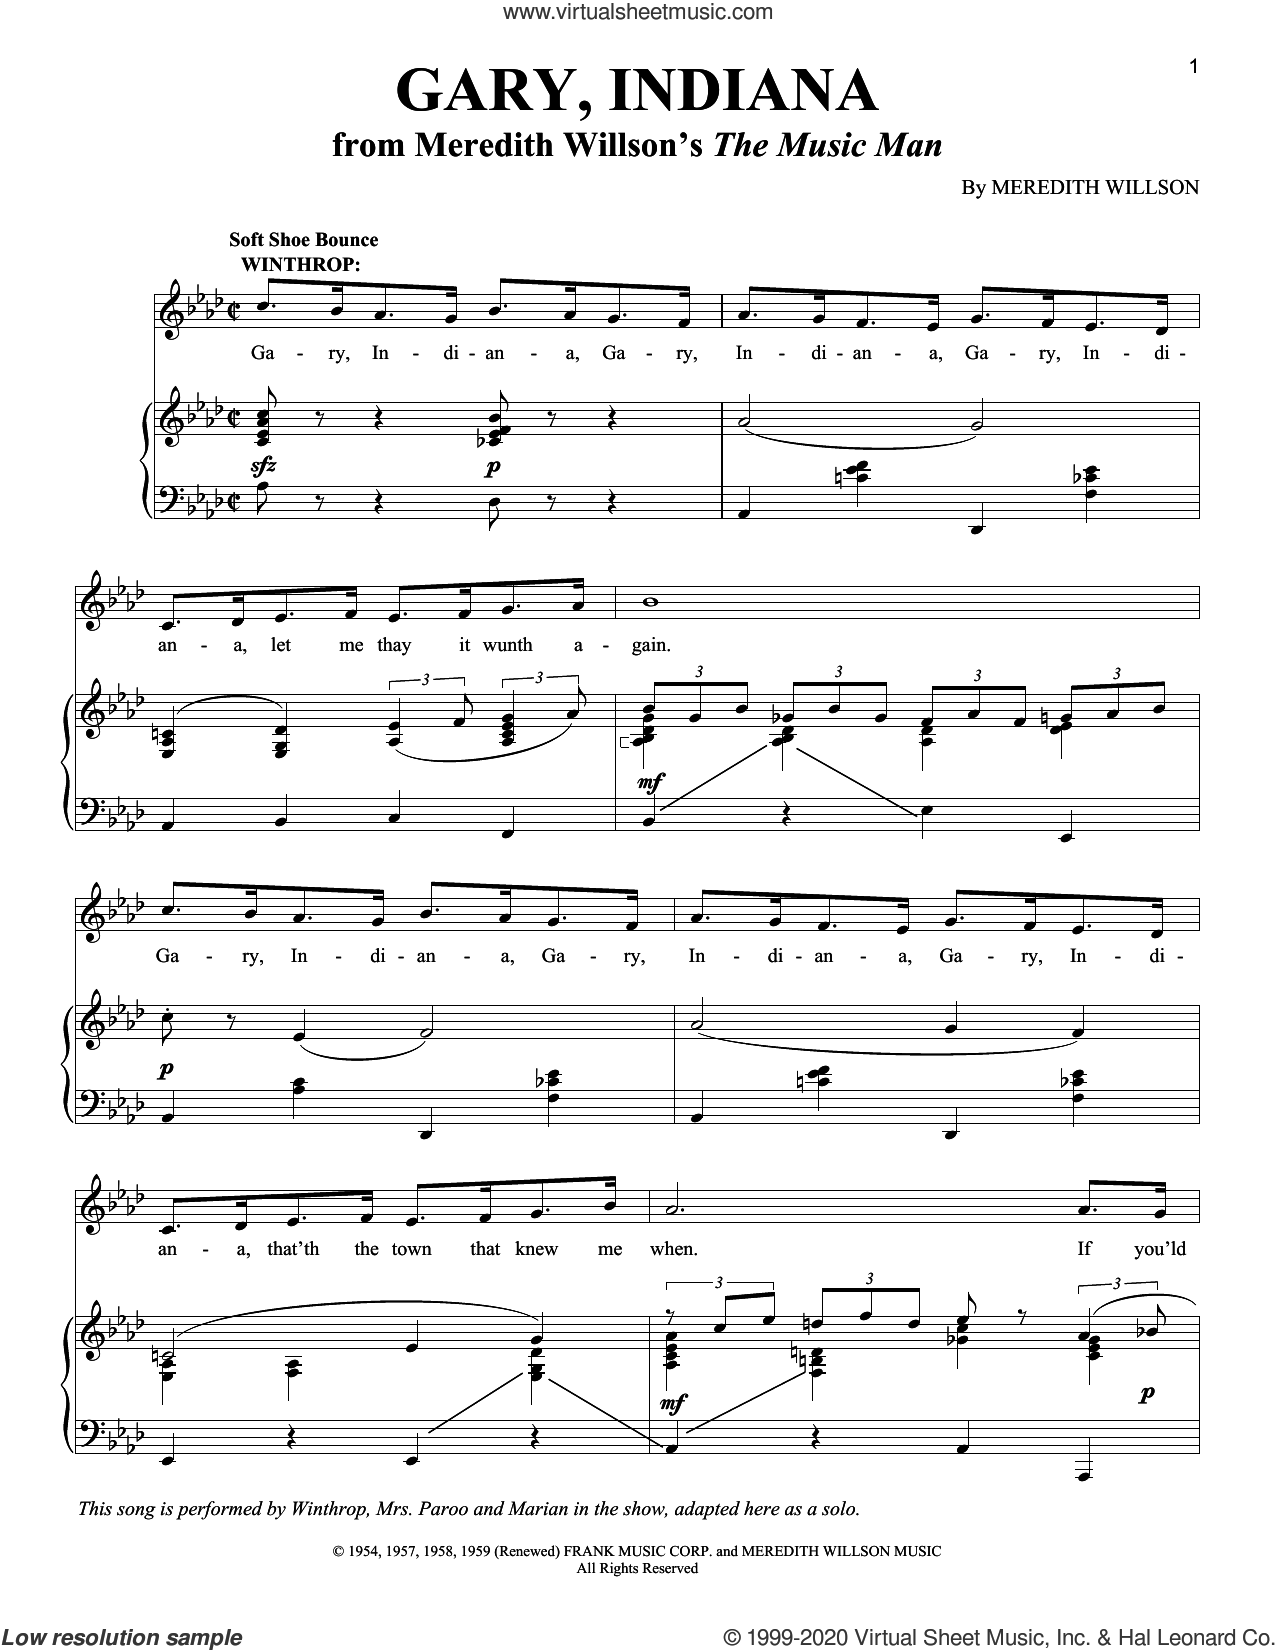 Gary, Indiana sheet music for voice and piano by Meredith Willson, intermediate skill level